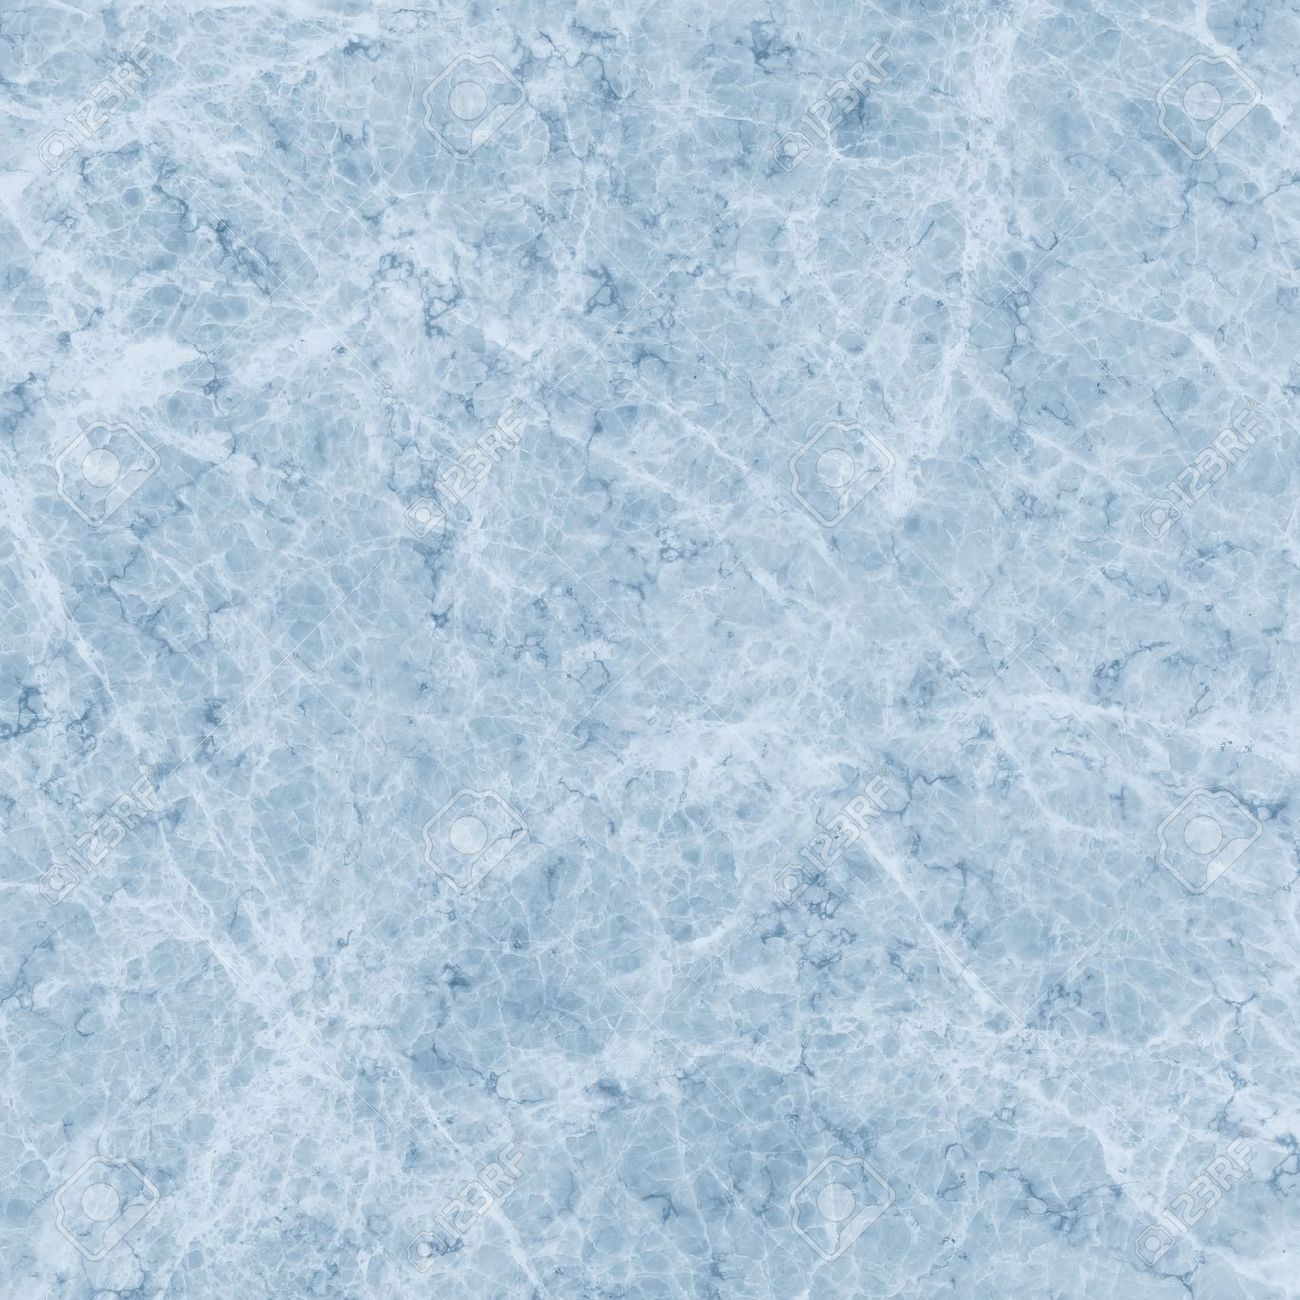 Blue Marble Texture High Resolution Stock Photo Picture And Blue Marble Pink Marble Background Marble Texture